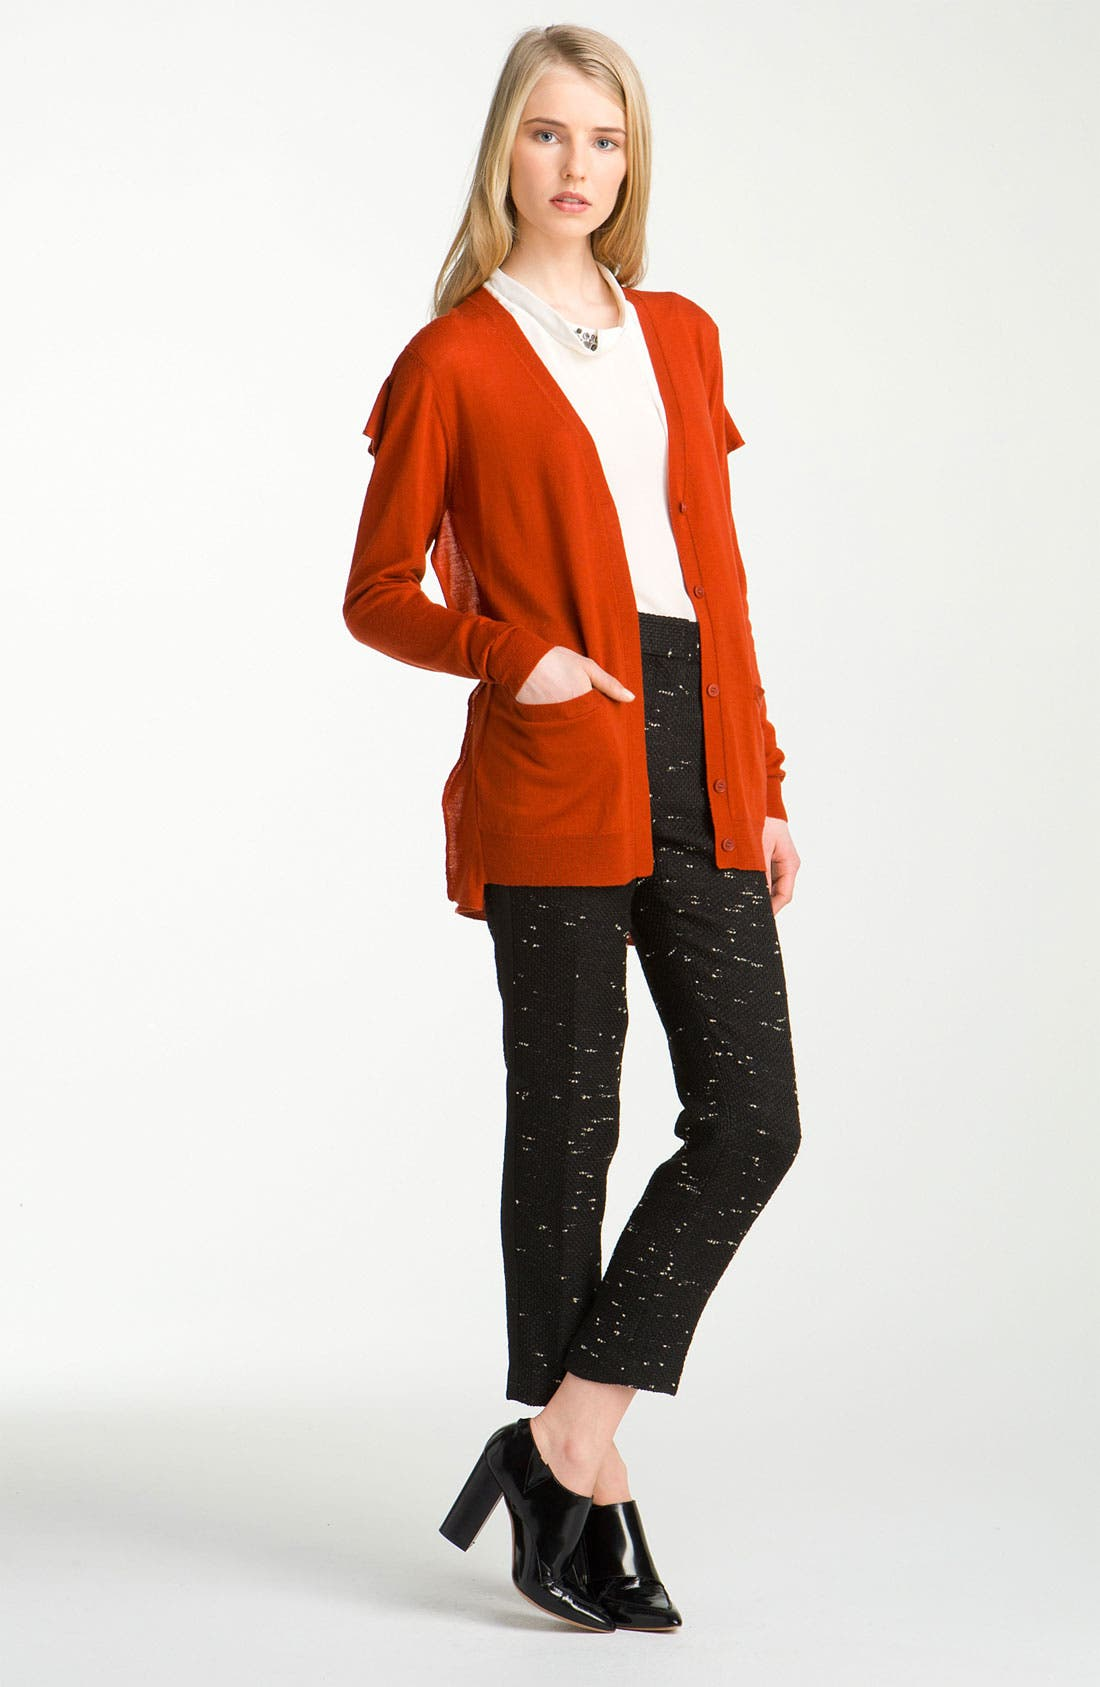 Main Image - 3.1 Phillip Lim Flat Back Panel Cardigan